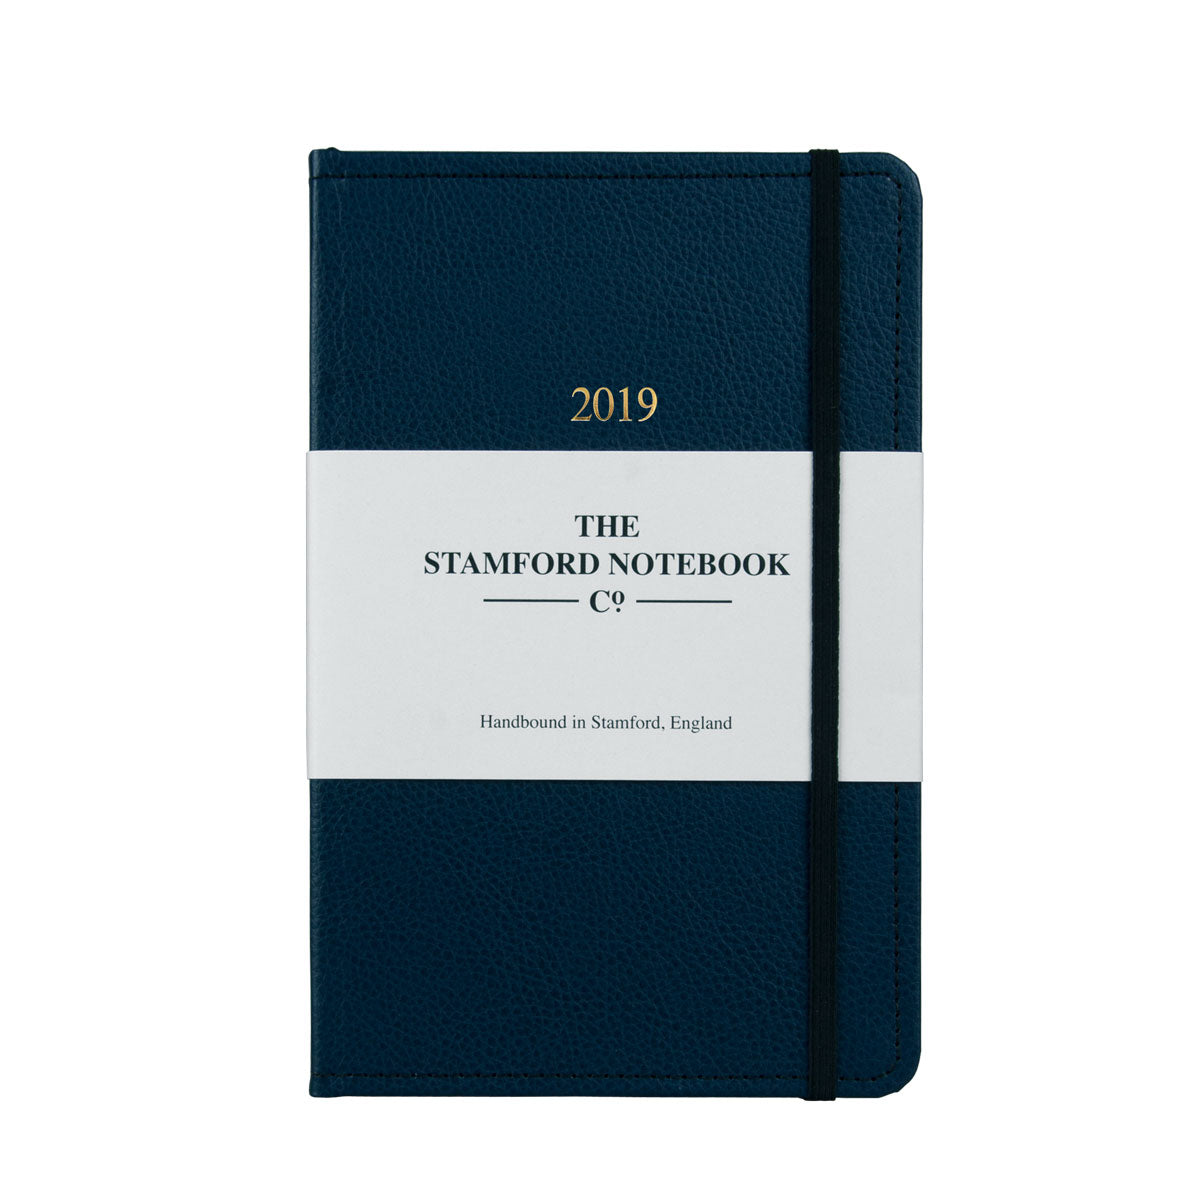 Marine Blue leather diary with black stitching